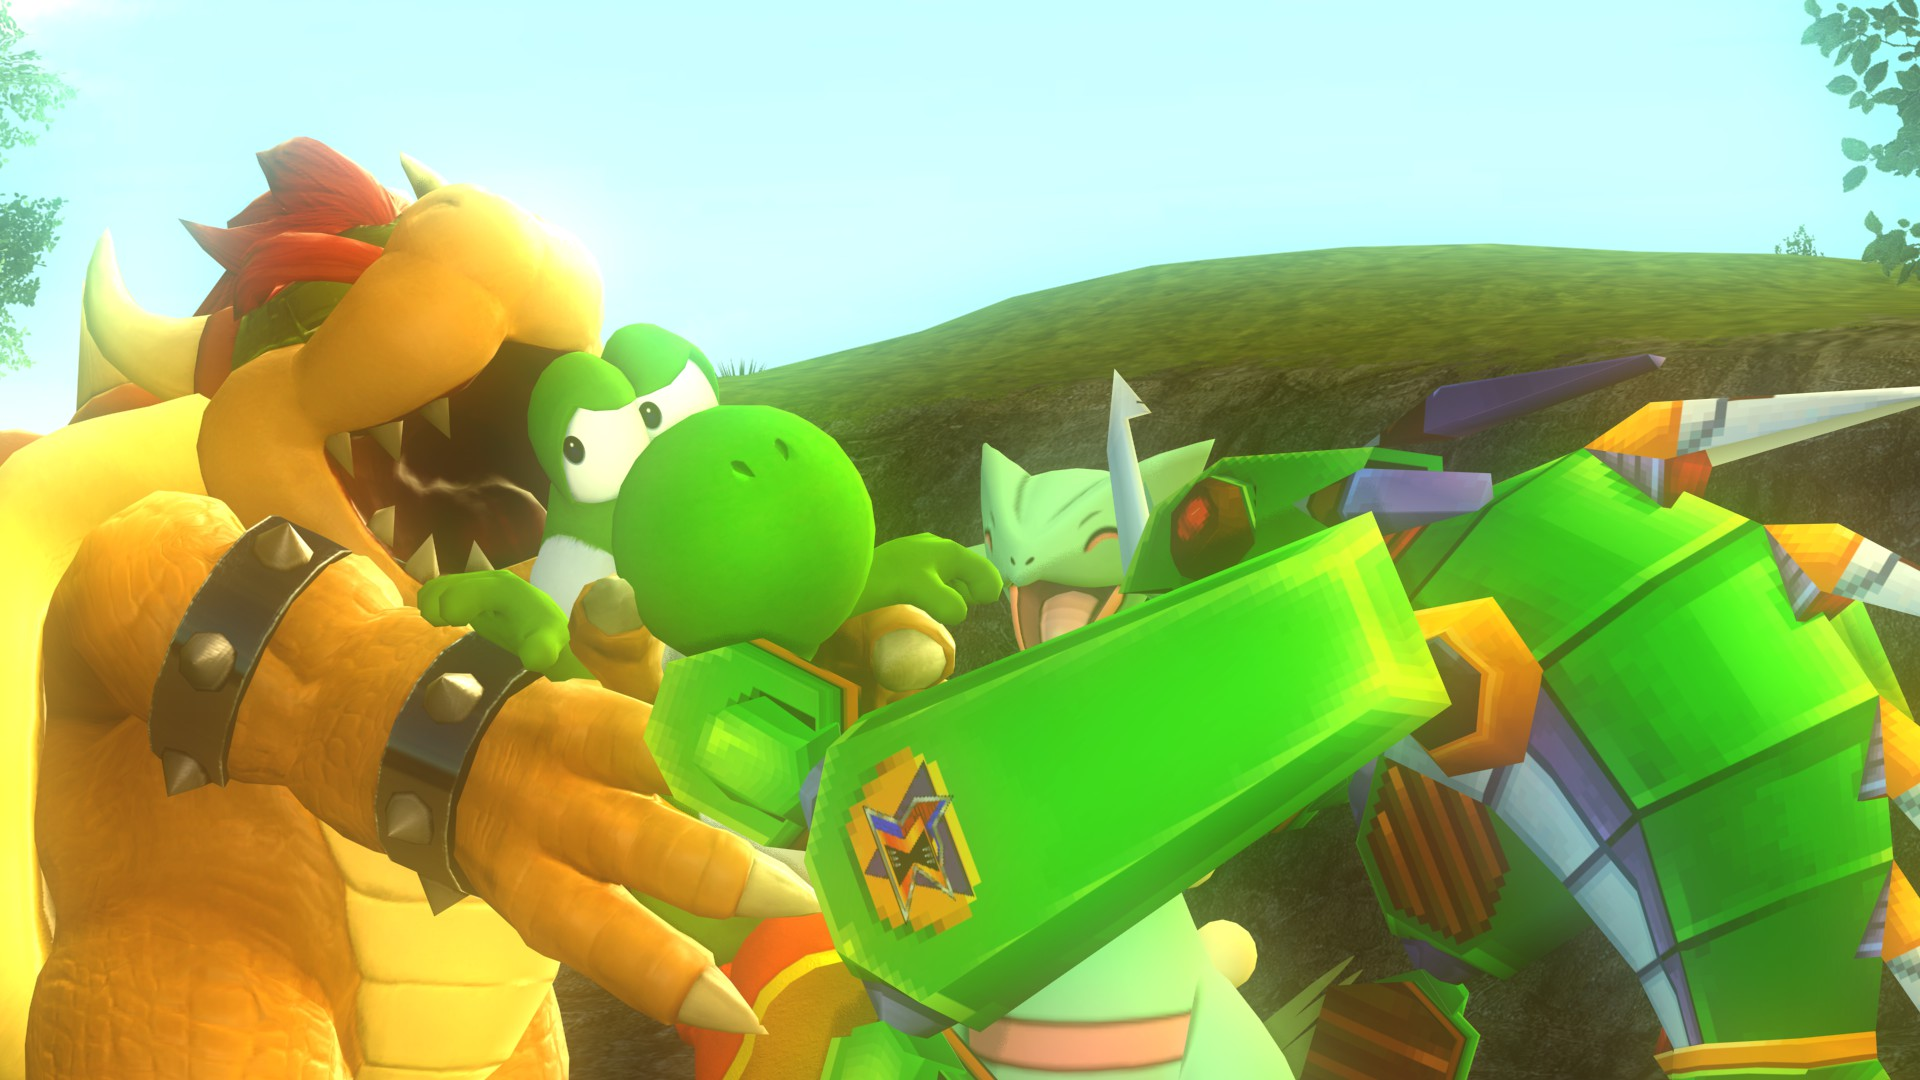 Hugs for the Little Yoshi ^D^ by IcePony64 on DeviantArt |Bowser Loves Yoshi